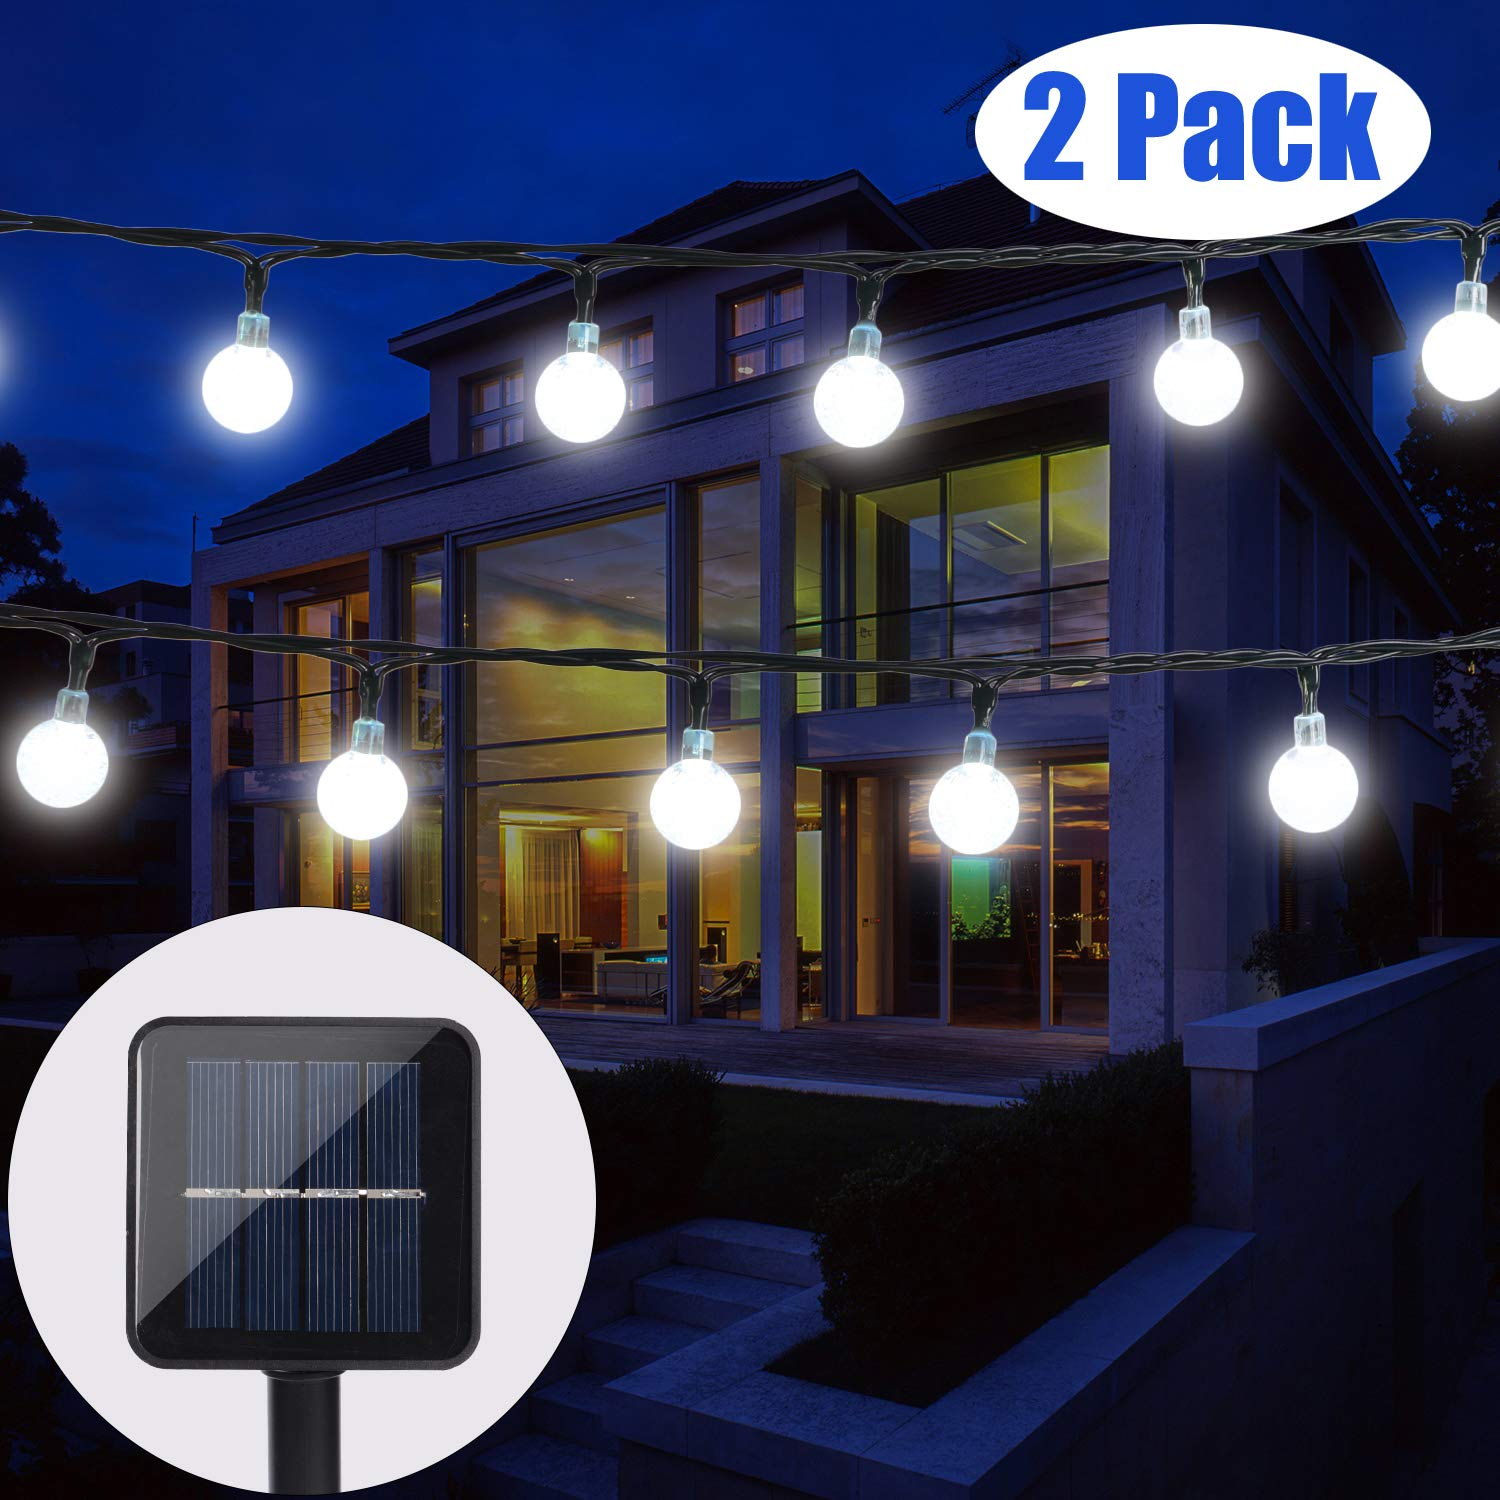 BAOANT 2 Pack Solar String Lights Fairy Lights 20Ft 30 LED Crystal Ball String Lights Starry Lights Globe String Lights for Garden Home Patio Indoor Outdoor(White)